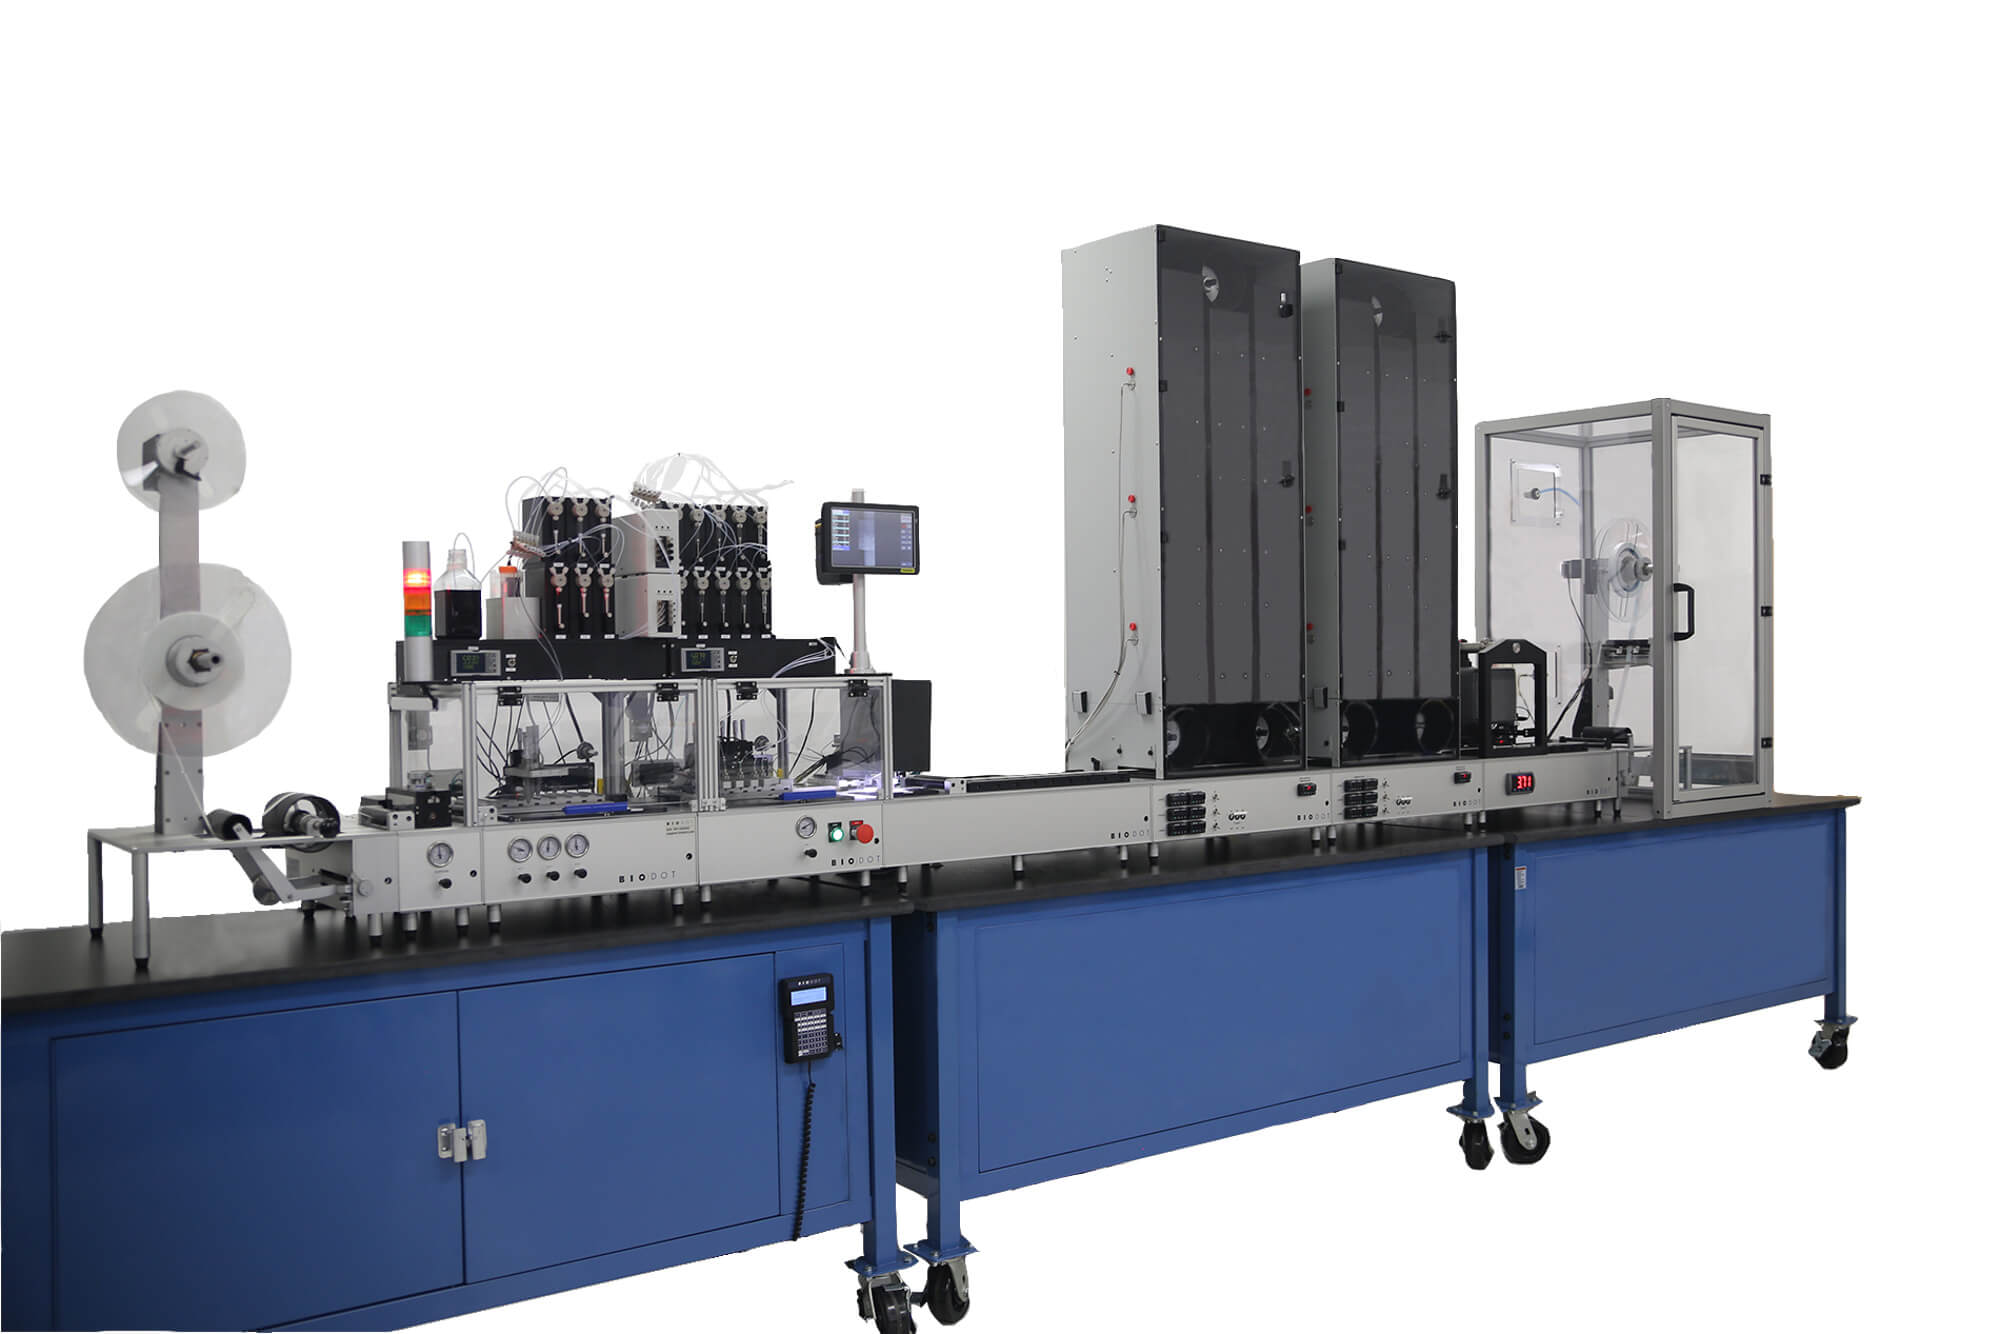 RR120 Customized with 2 Dispense Modules